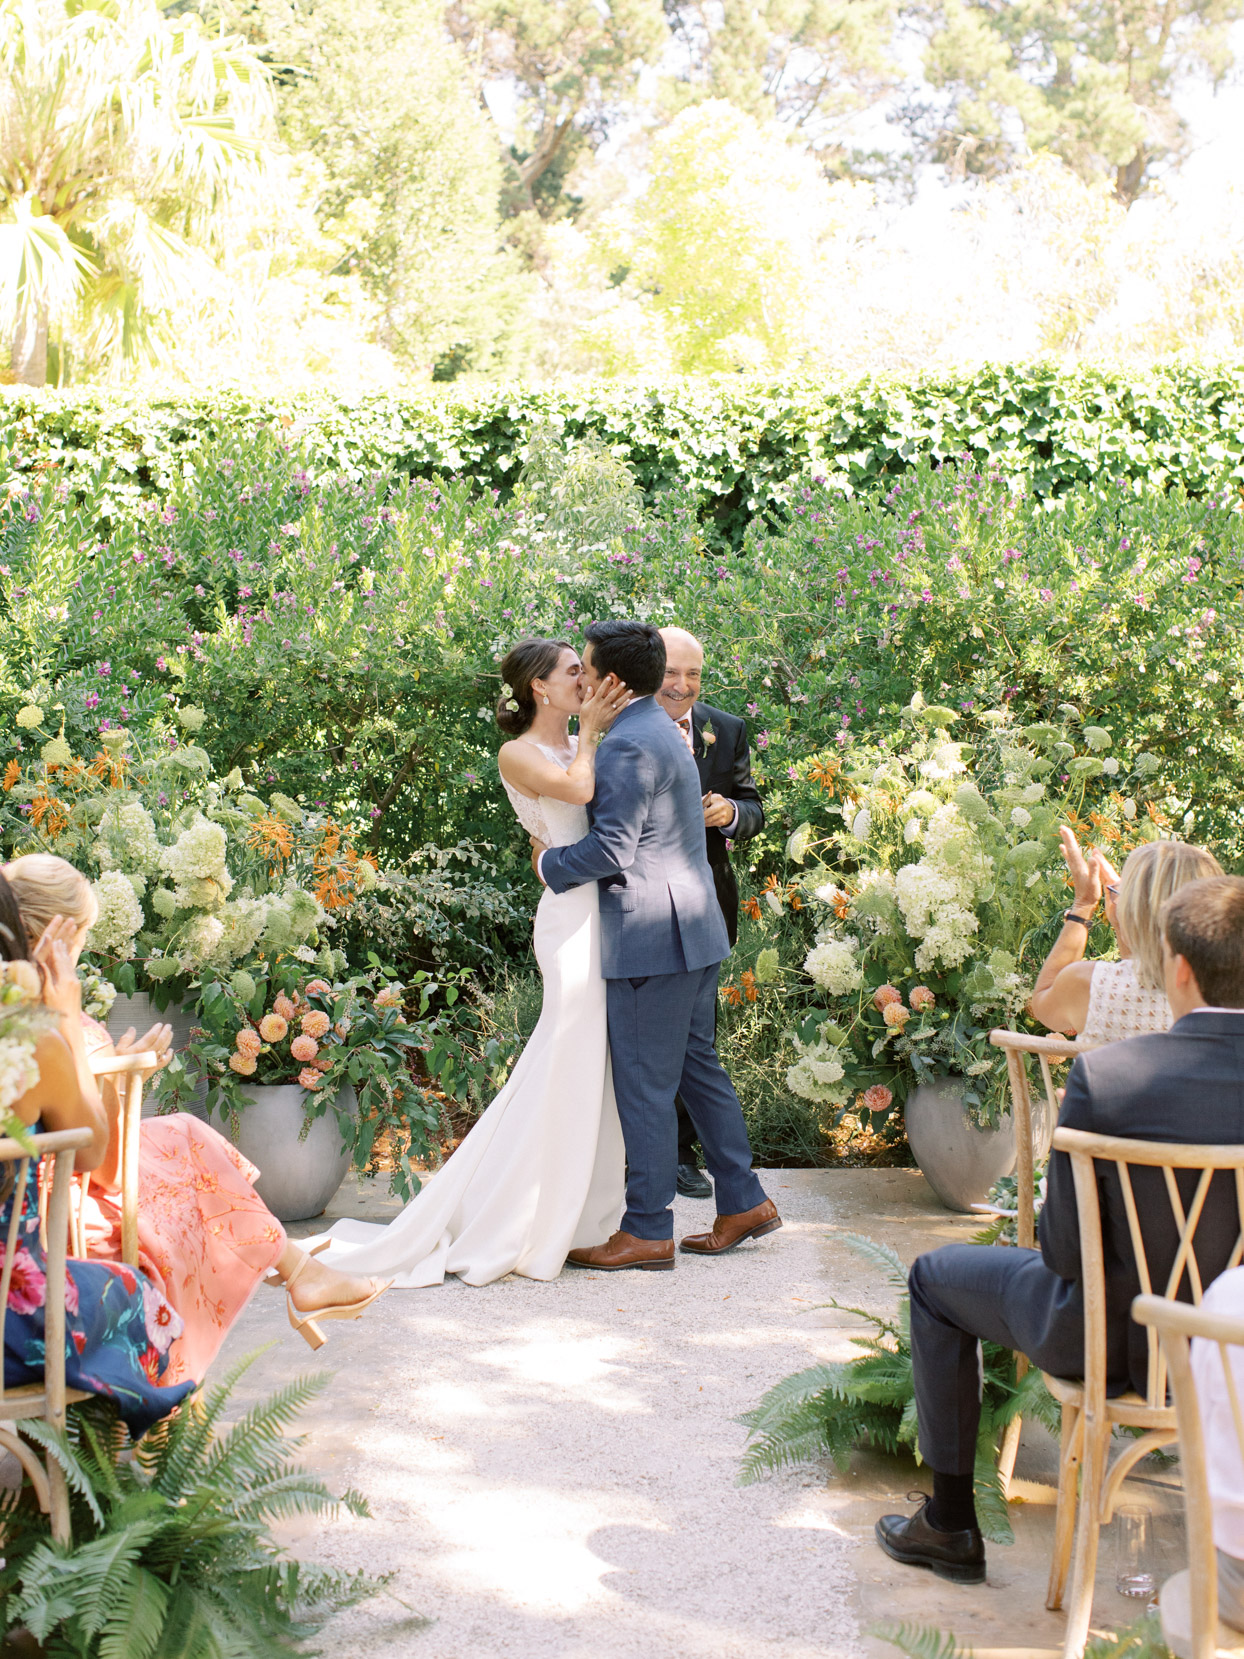 wedding ceremony kiss with floral and greenery backdrop